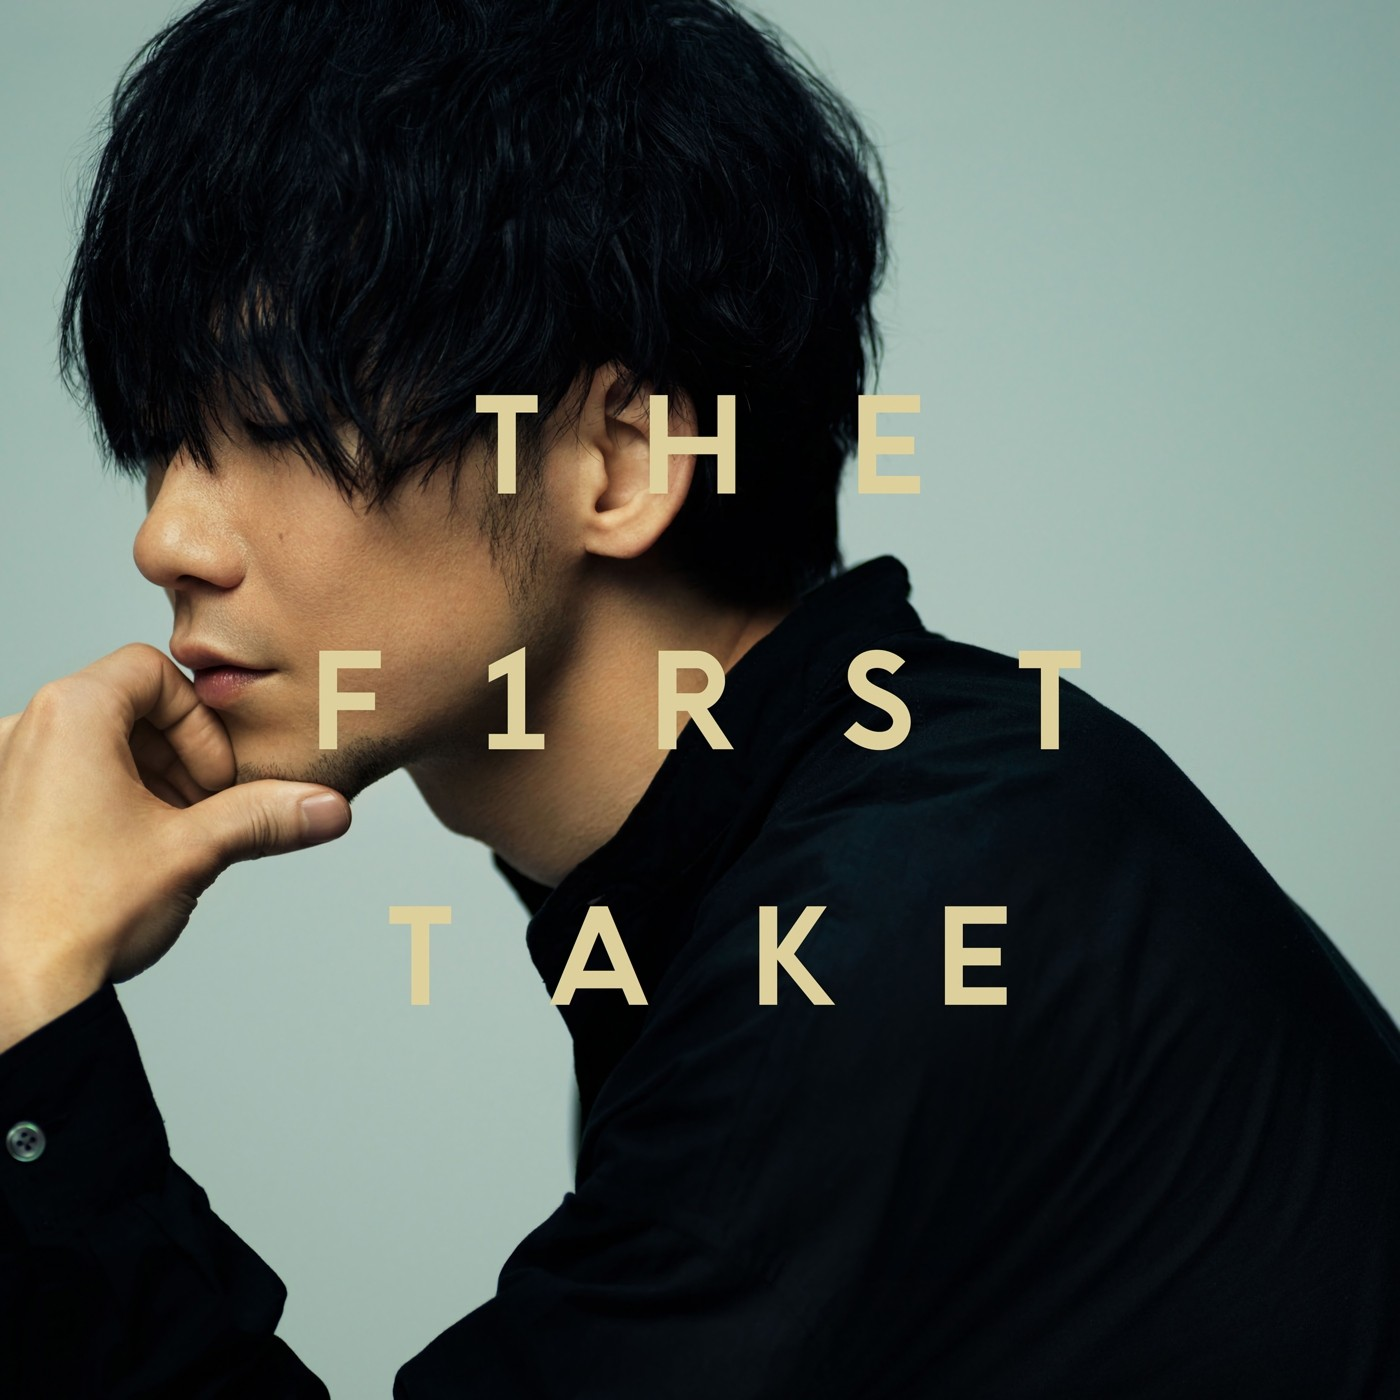 Download Single TK from Ling tosite sigure unravel From The First Take Flac